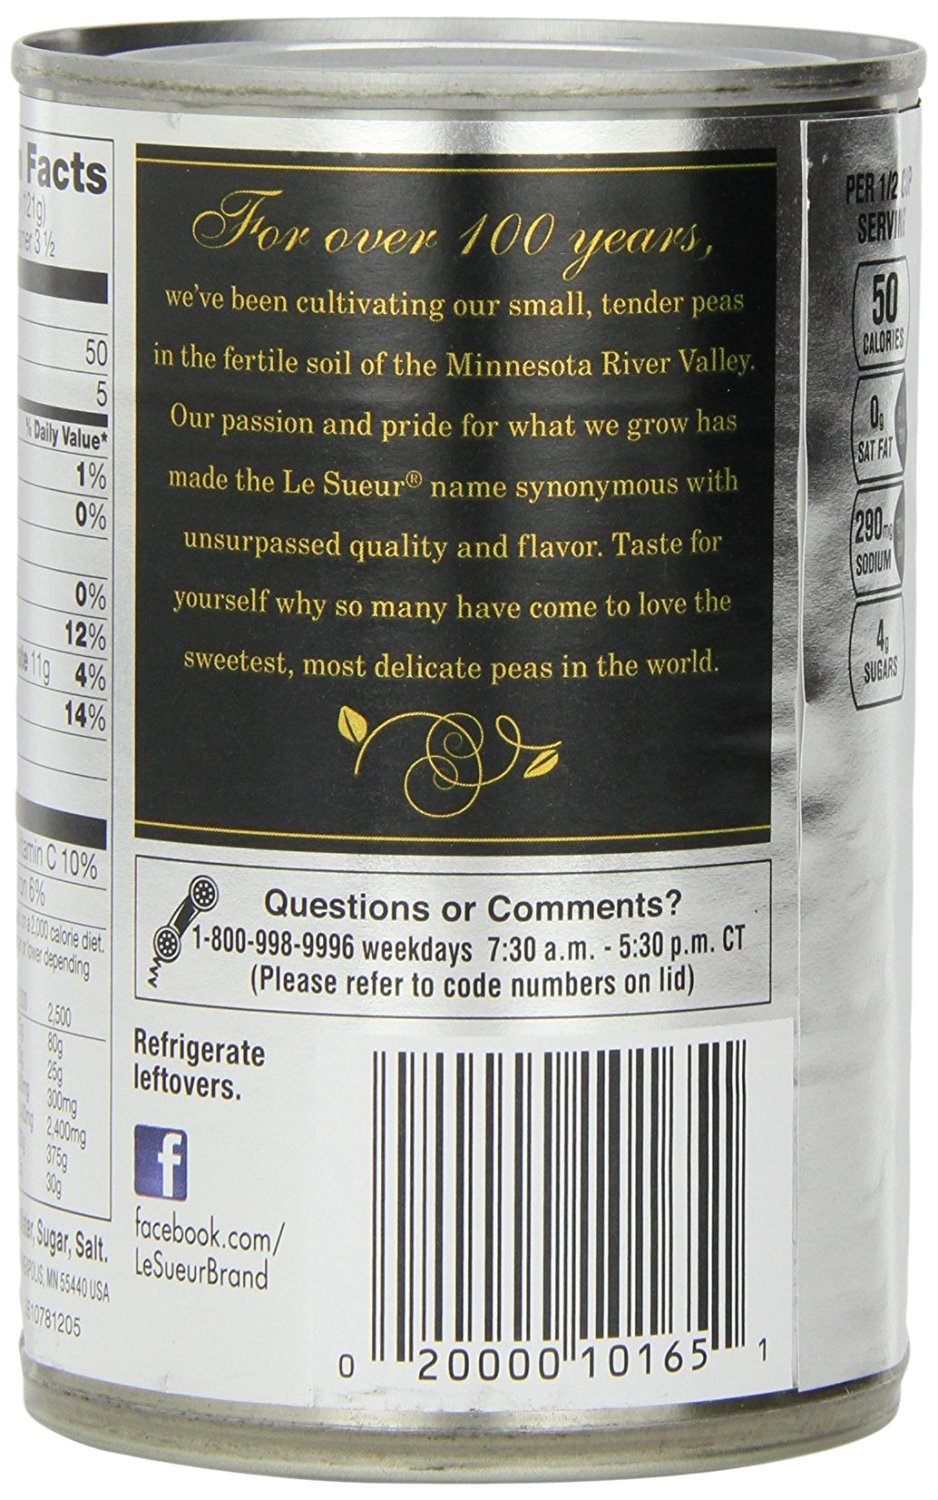 Le Sueur Very Young Small Sweet Peas, 15 Ounce (Pack of 24) by Le Sueur (Image #4)